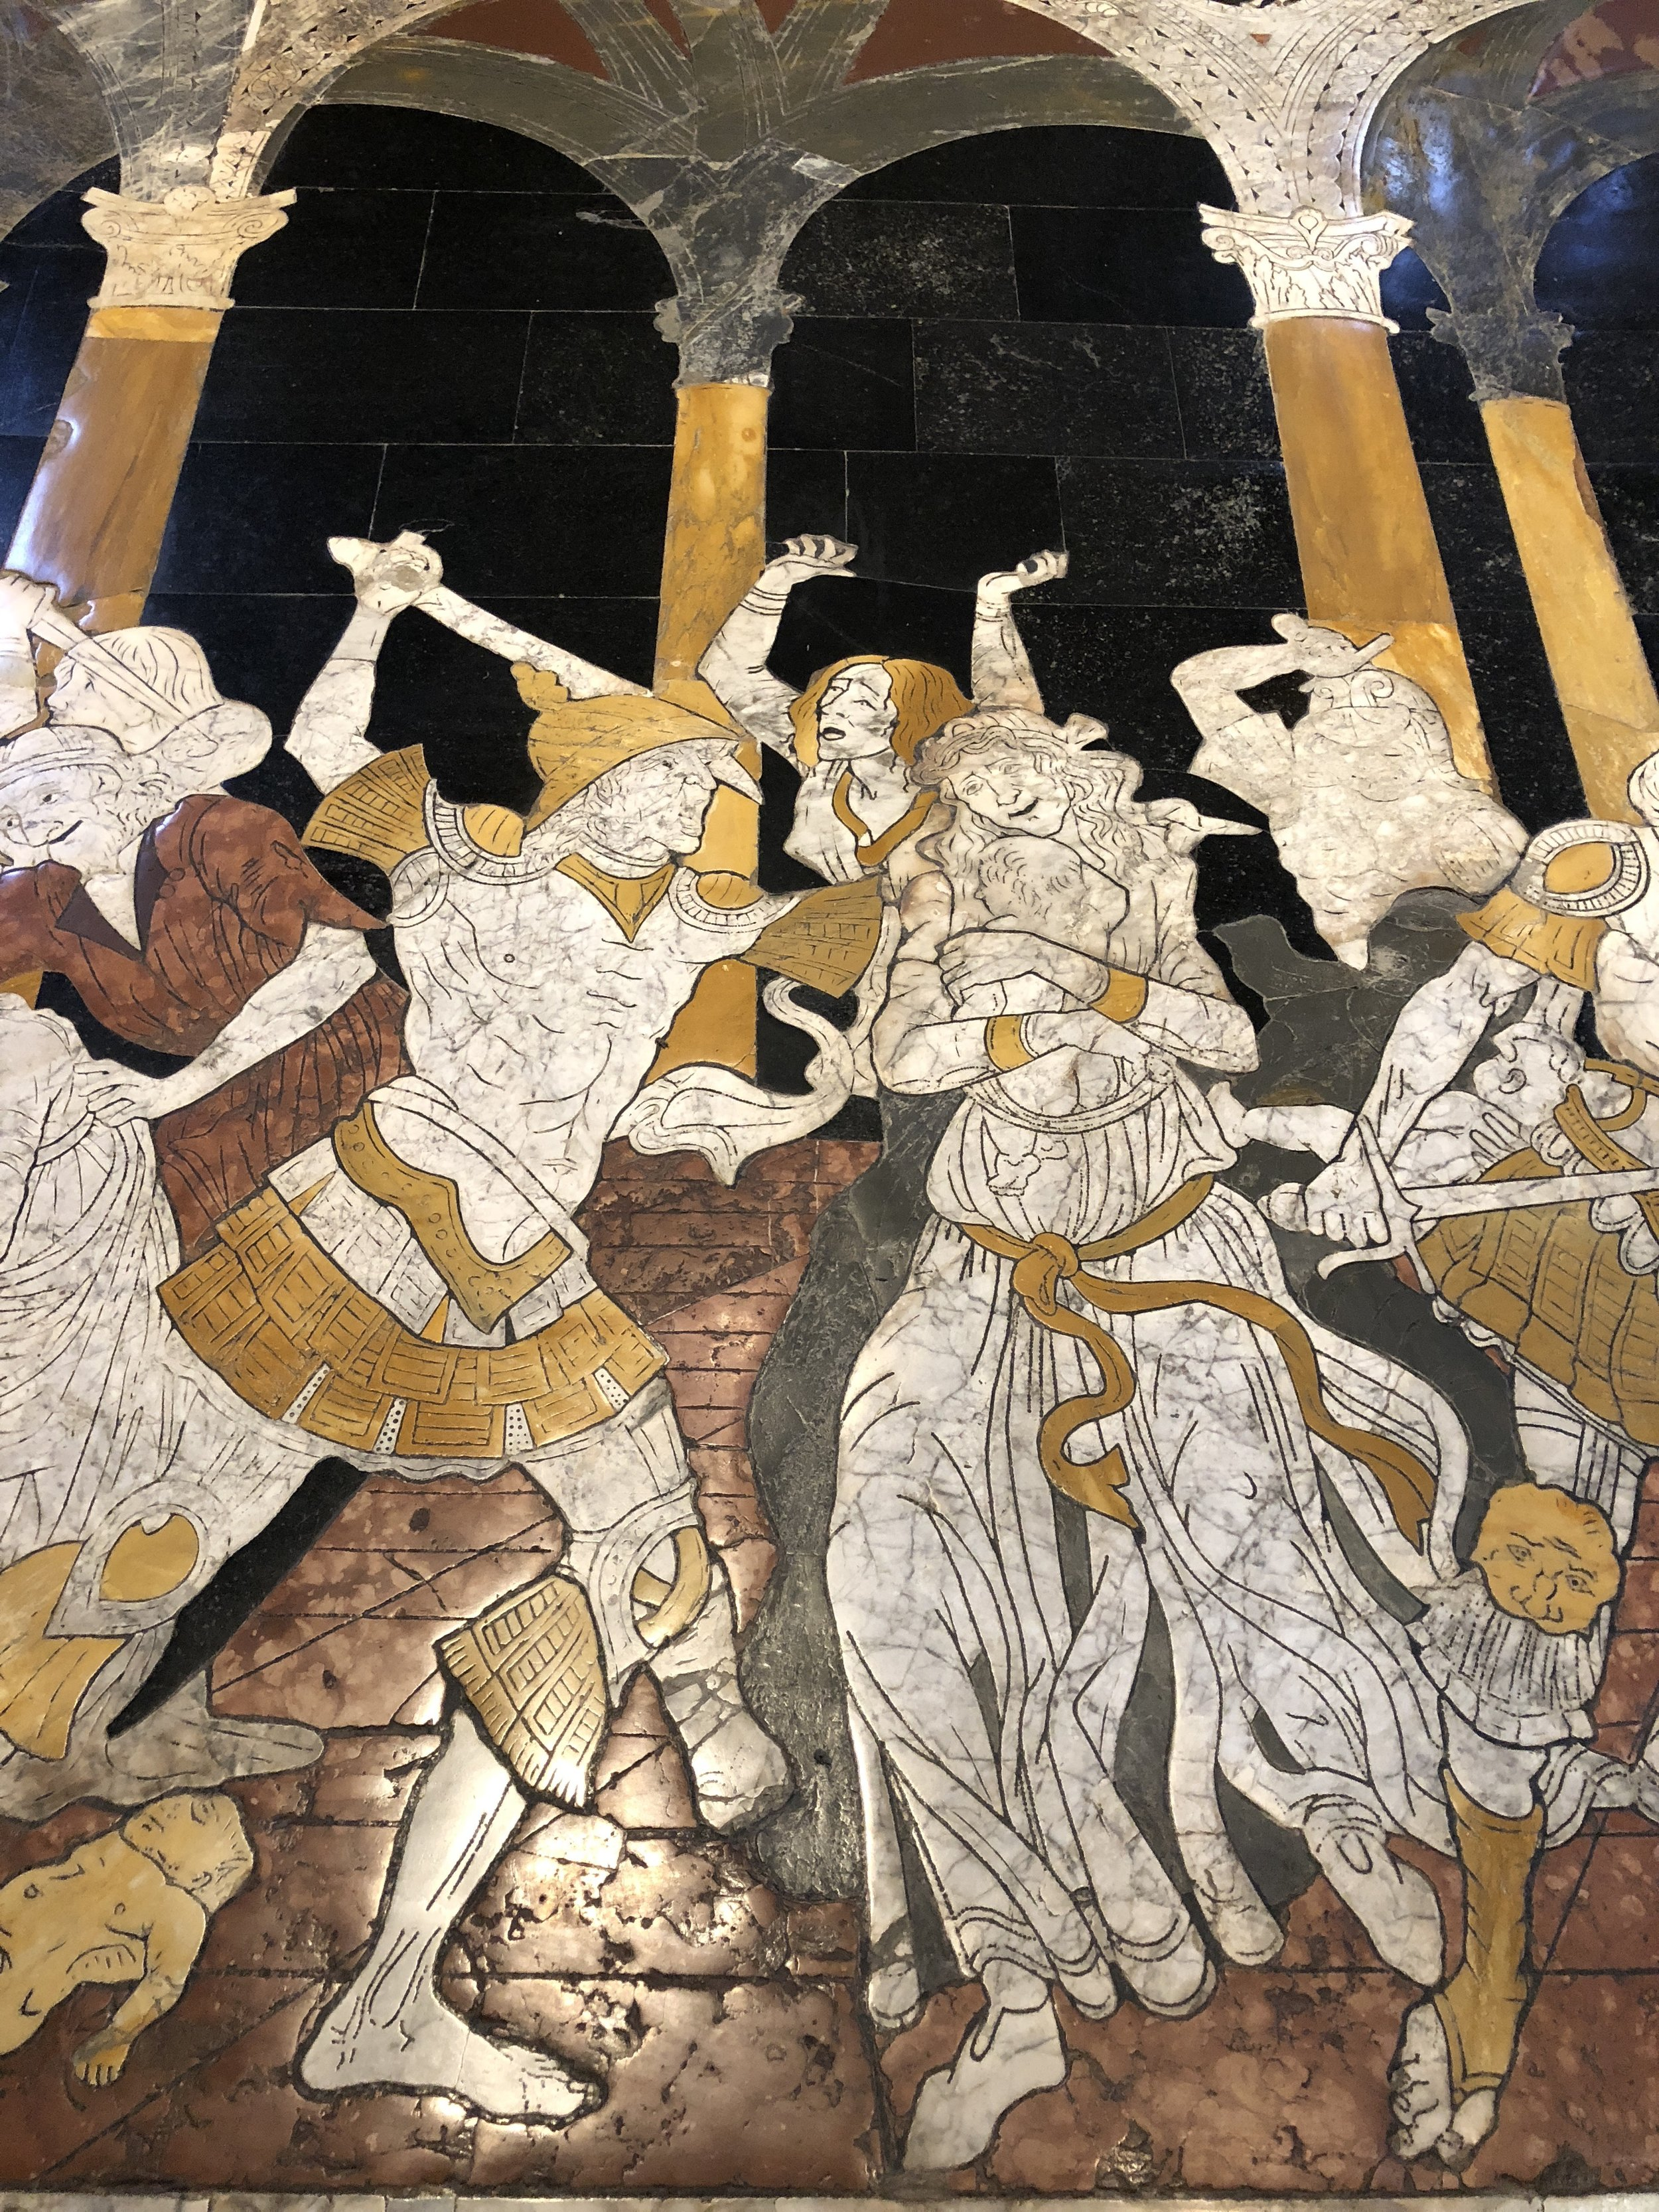 Detail of one of the marble mosaics on the floor of the Siena Cathedral. This is called the  Massacre of the Innocents,  which is based on the passage in Matthew 2 where King Herod tries to kill the baby Jesus by murdering all the male children in Bethlehem under the age of two.